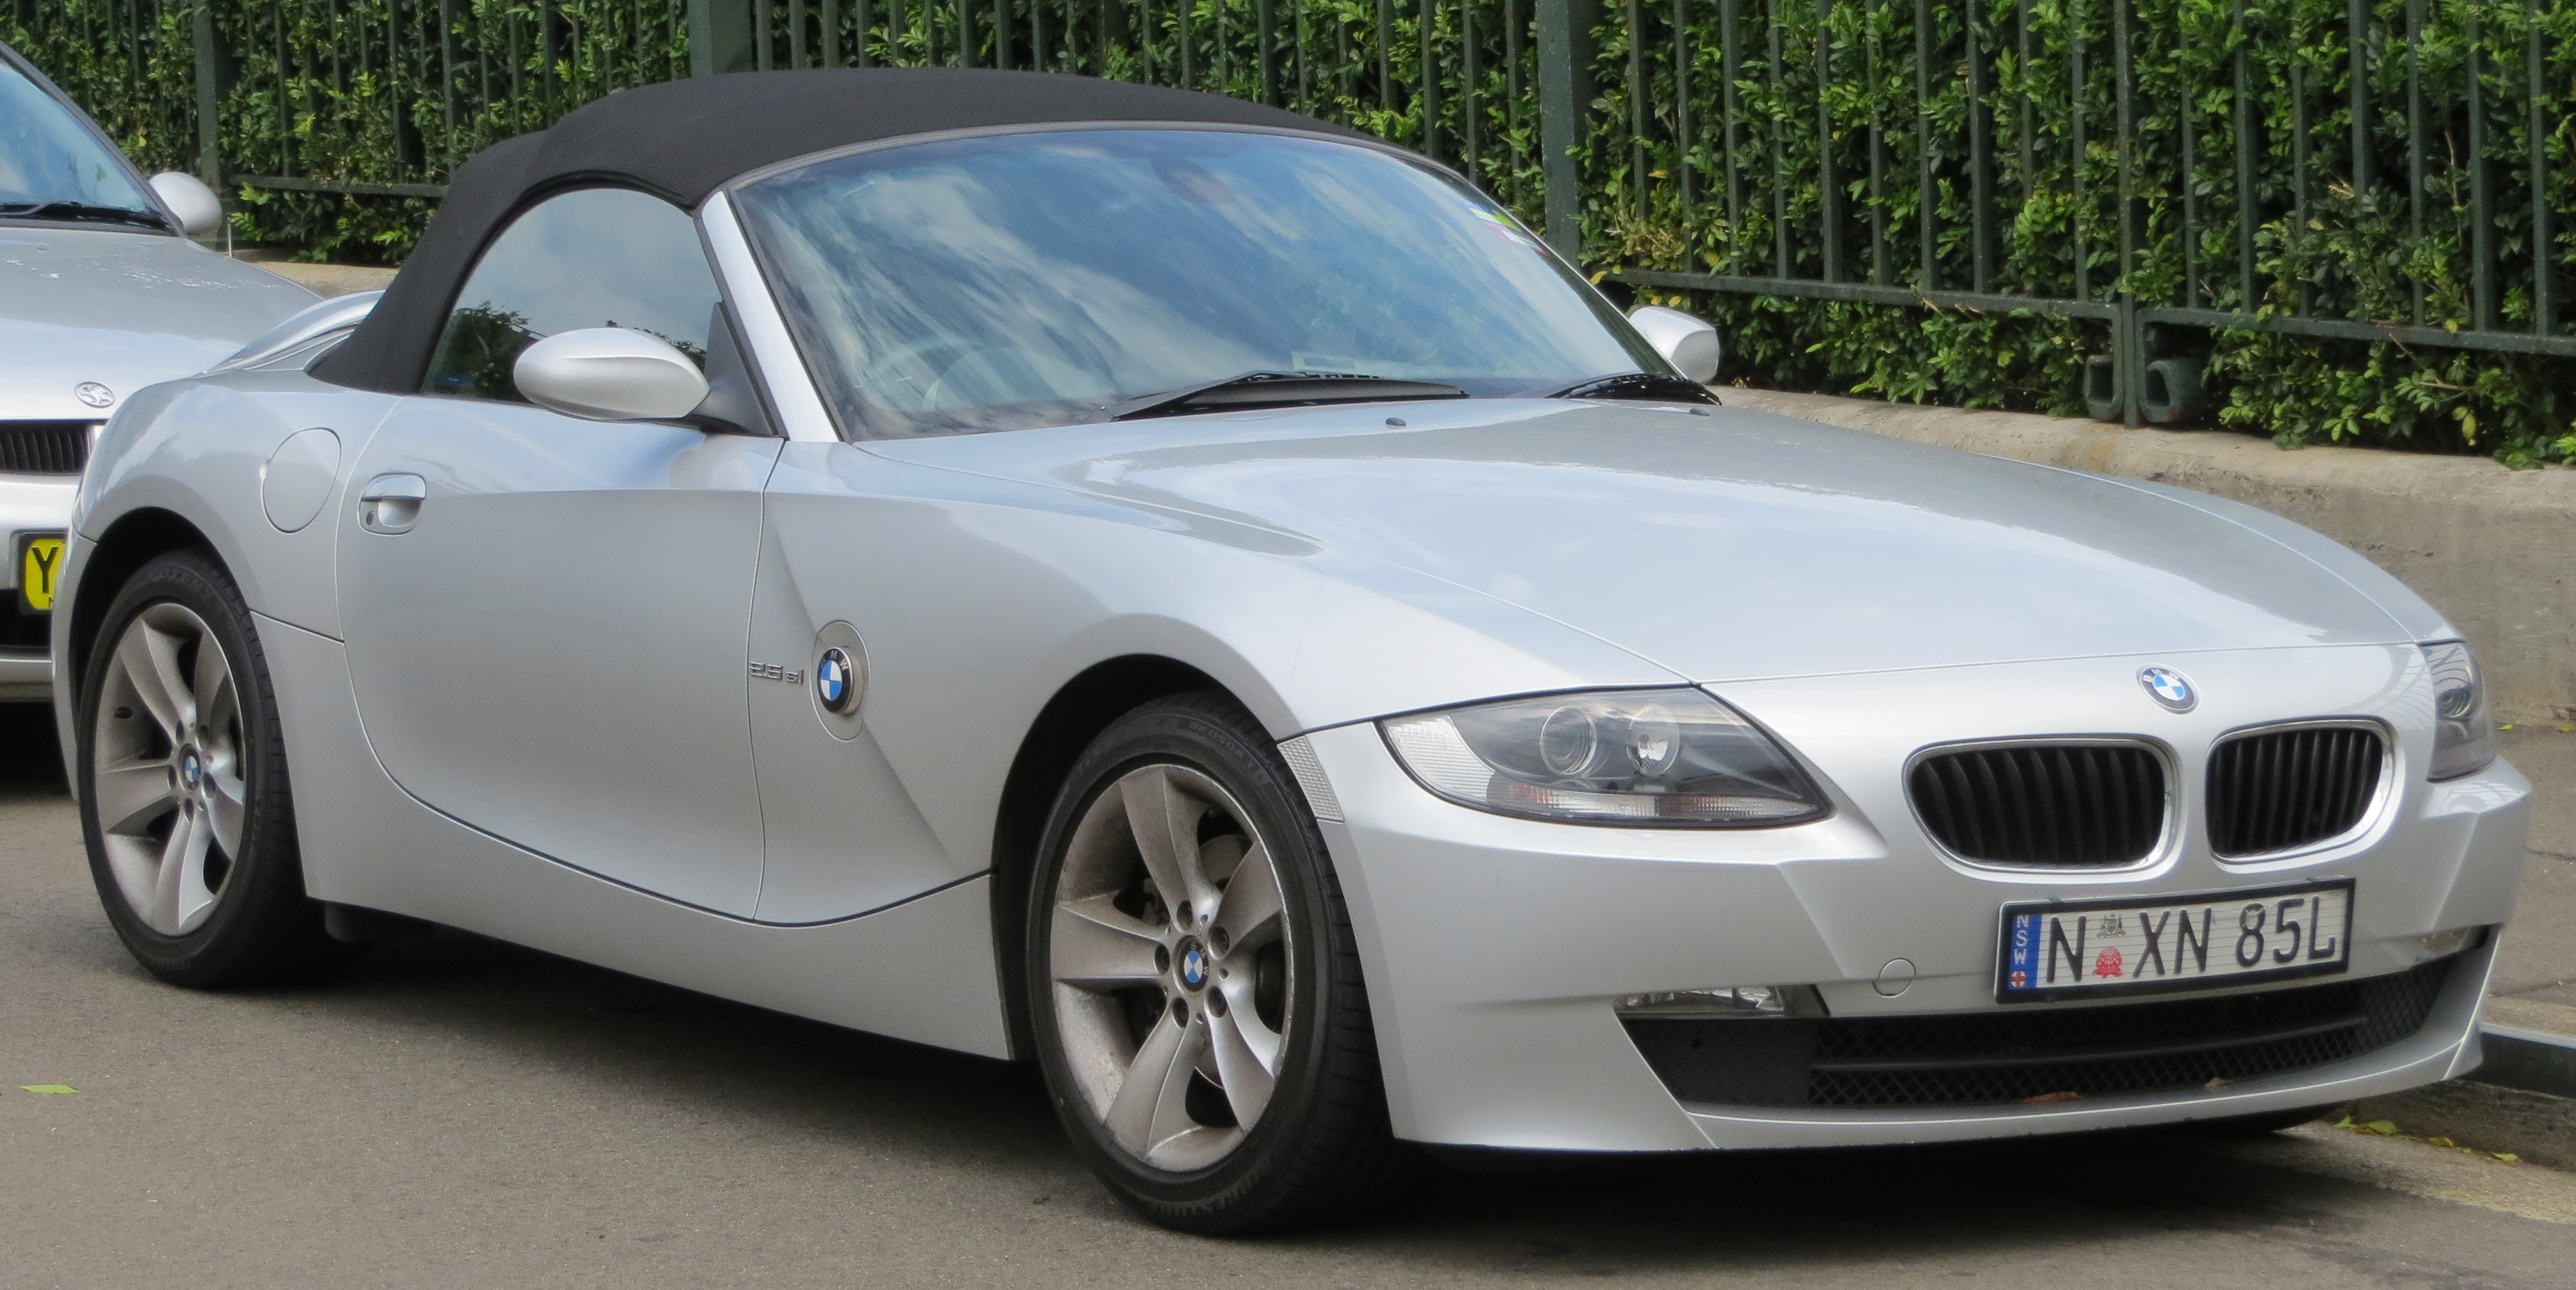 Bmw z4, les photos